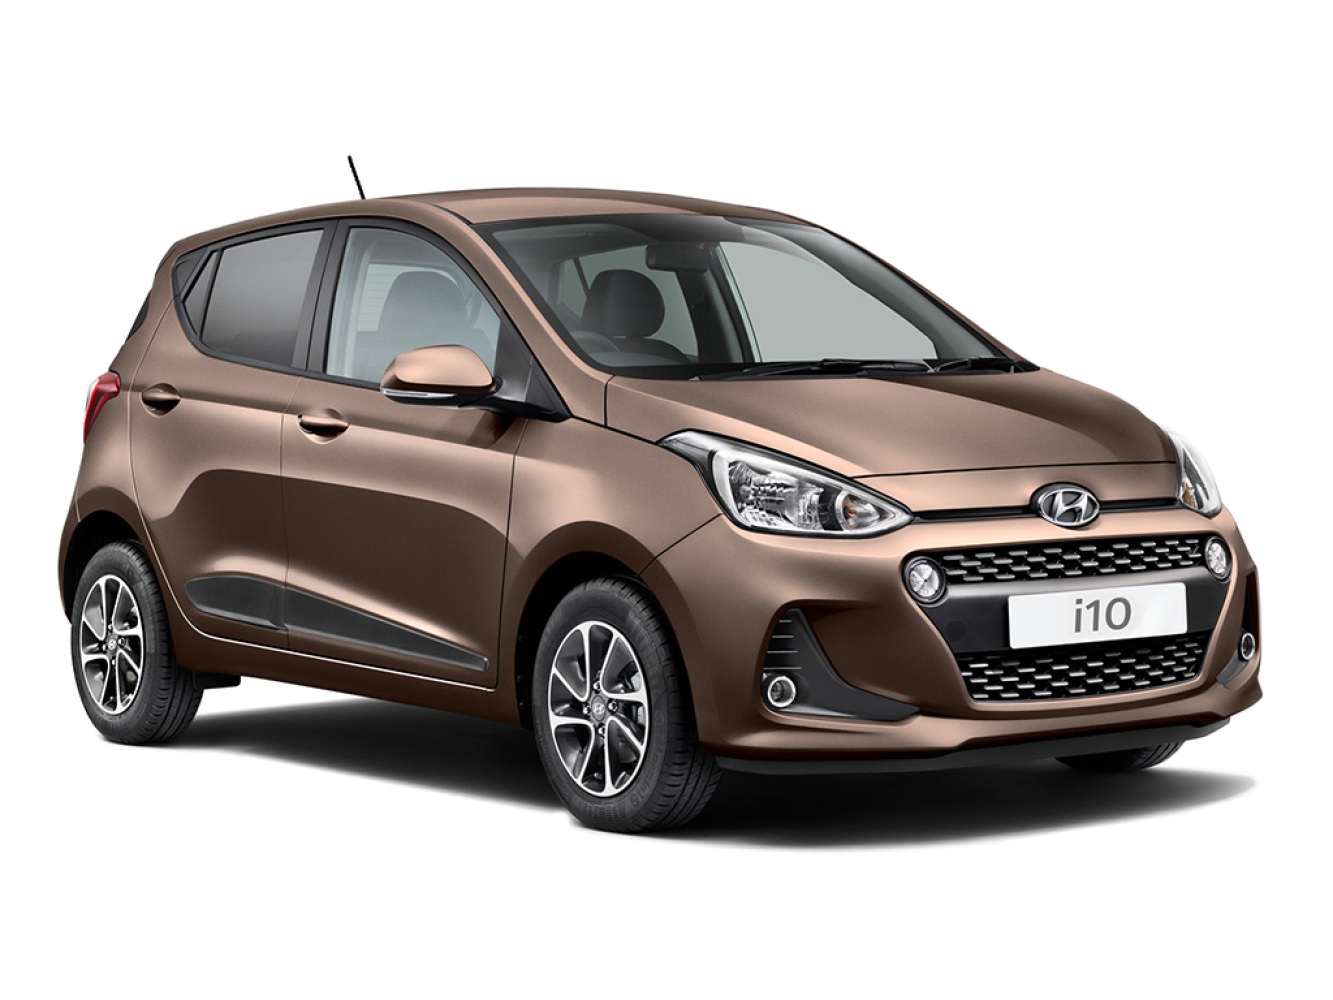 new hyundai i10 1 0 premium 5dr petrol hatchback. Black Bedroom Furniture Sets. Home Design Ideas